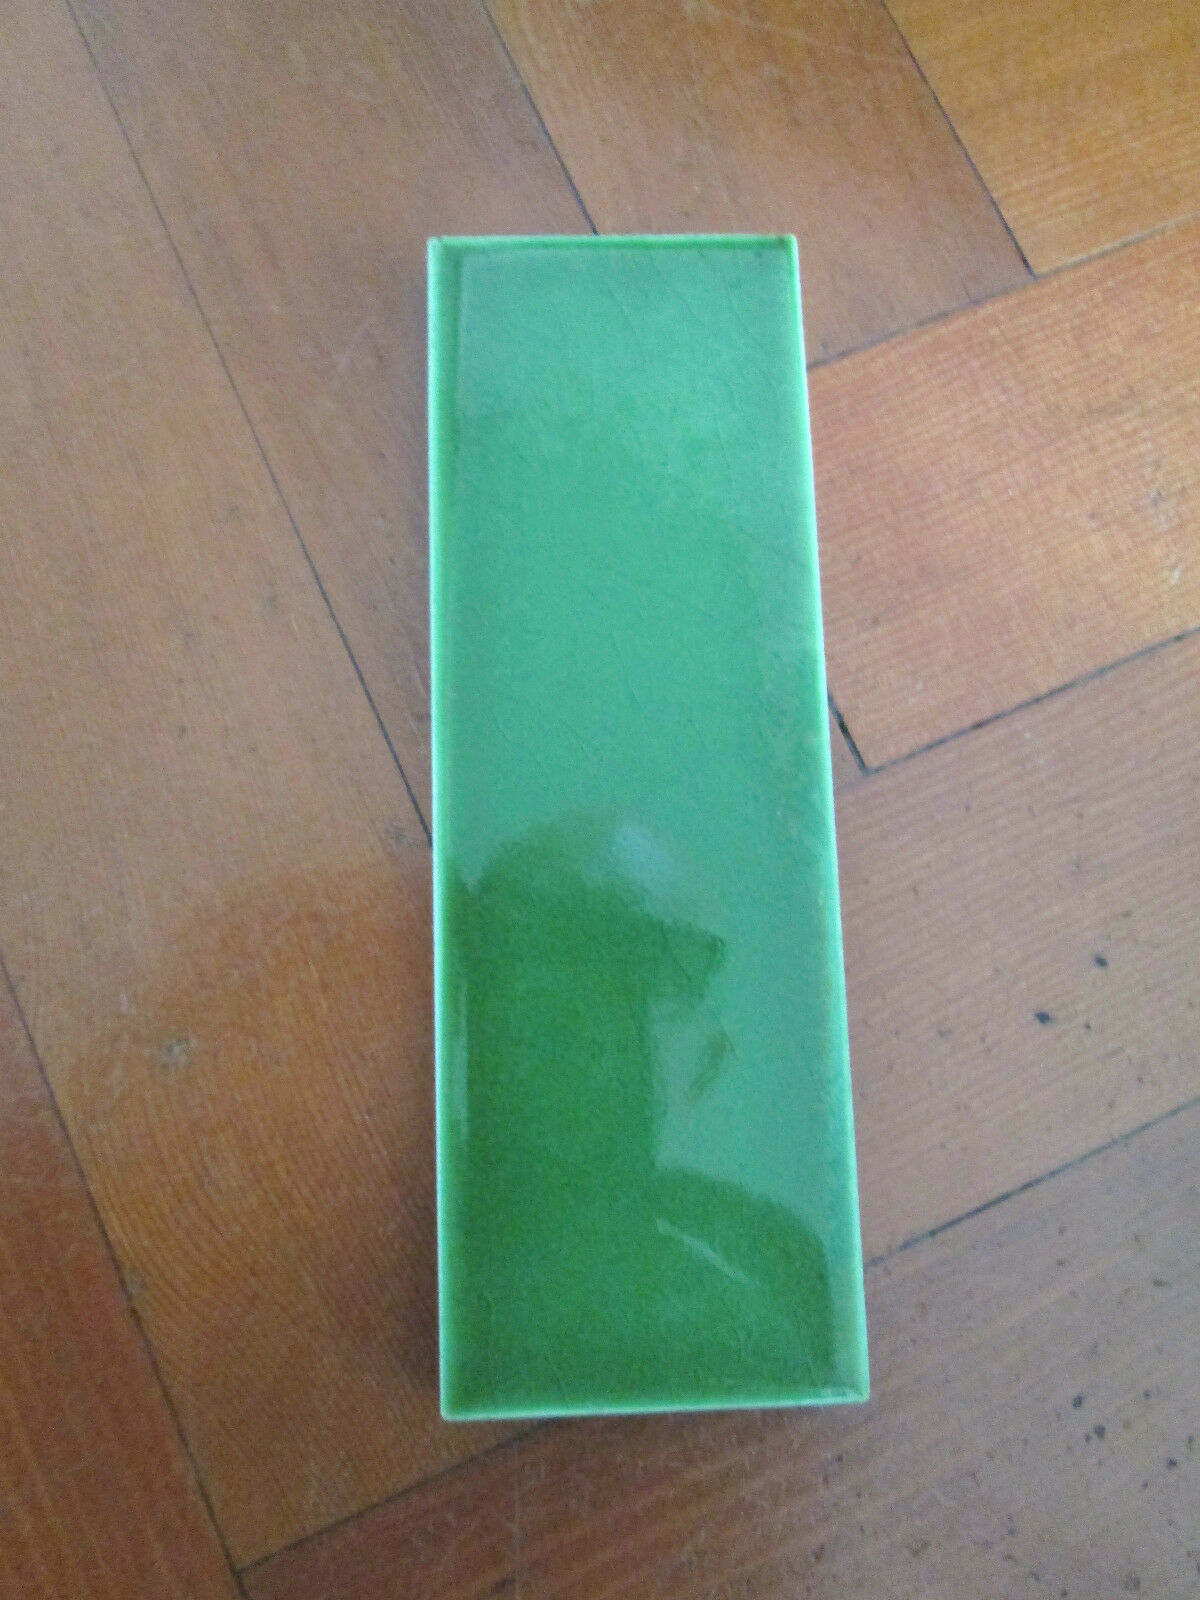 1930S FIREPLACE GREEN TILE - $13.12 | PicClick